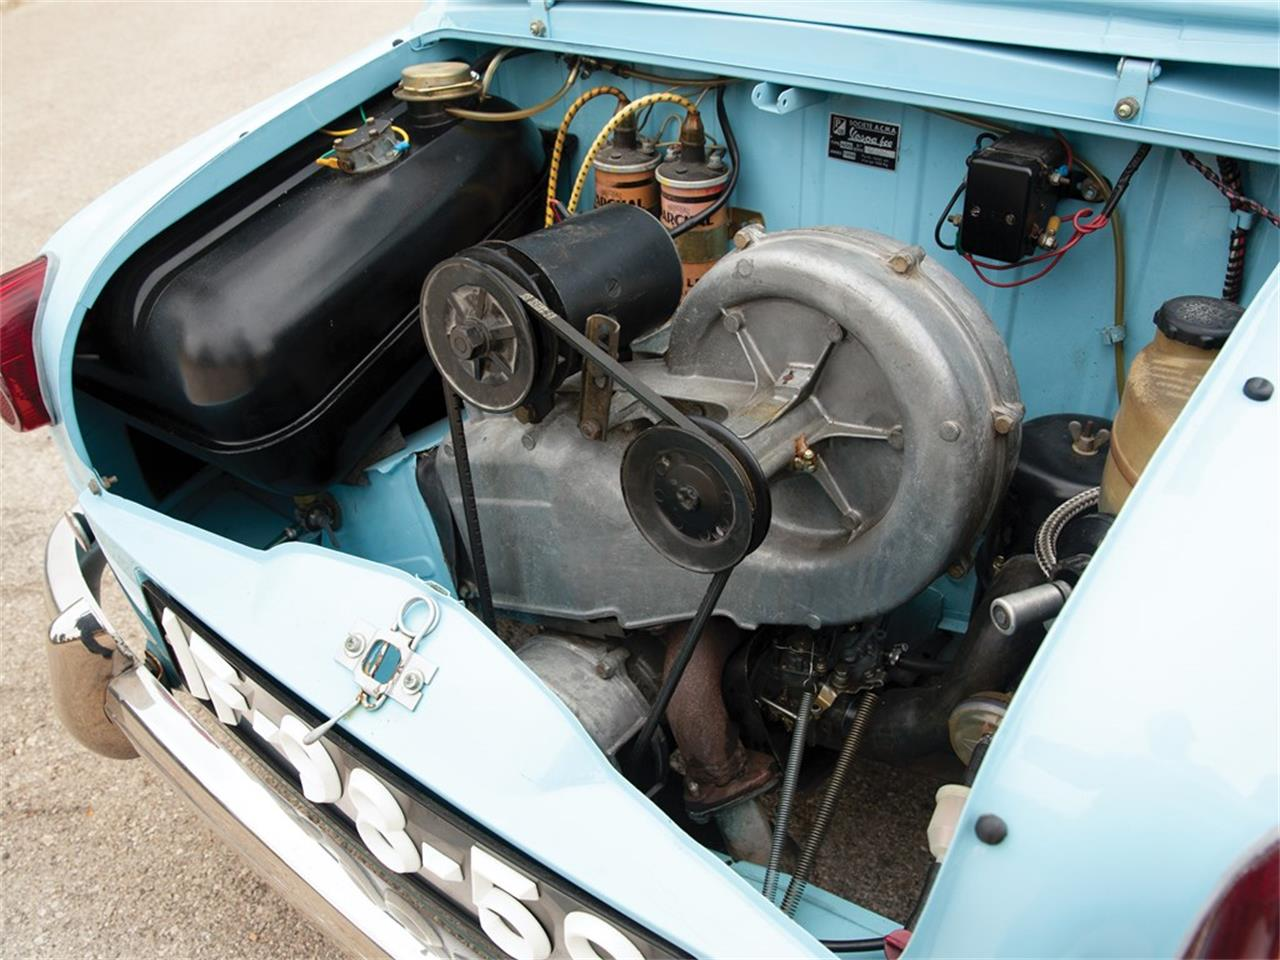 1959 Vespa 400 for sale in Monteira, Other – photo 3